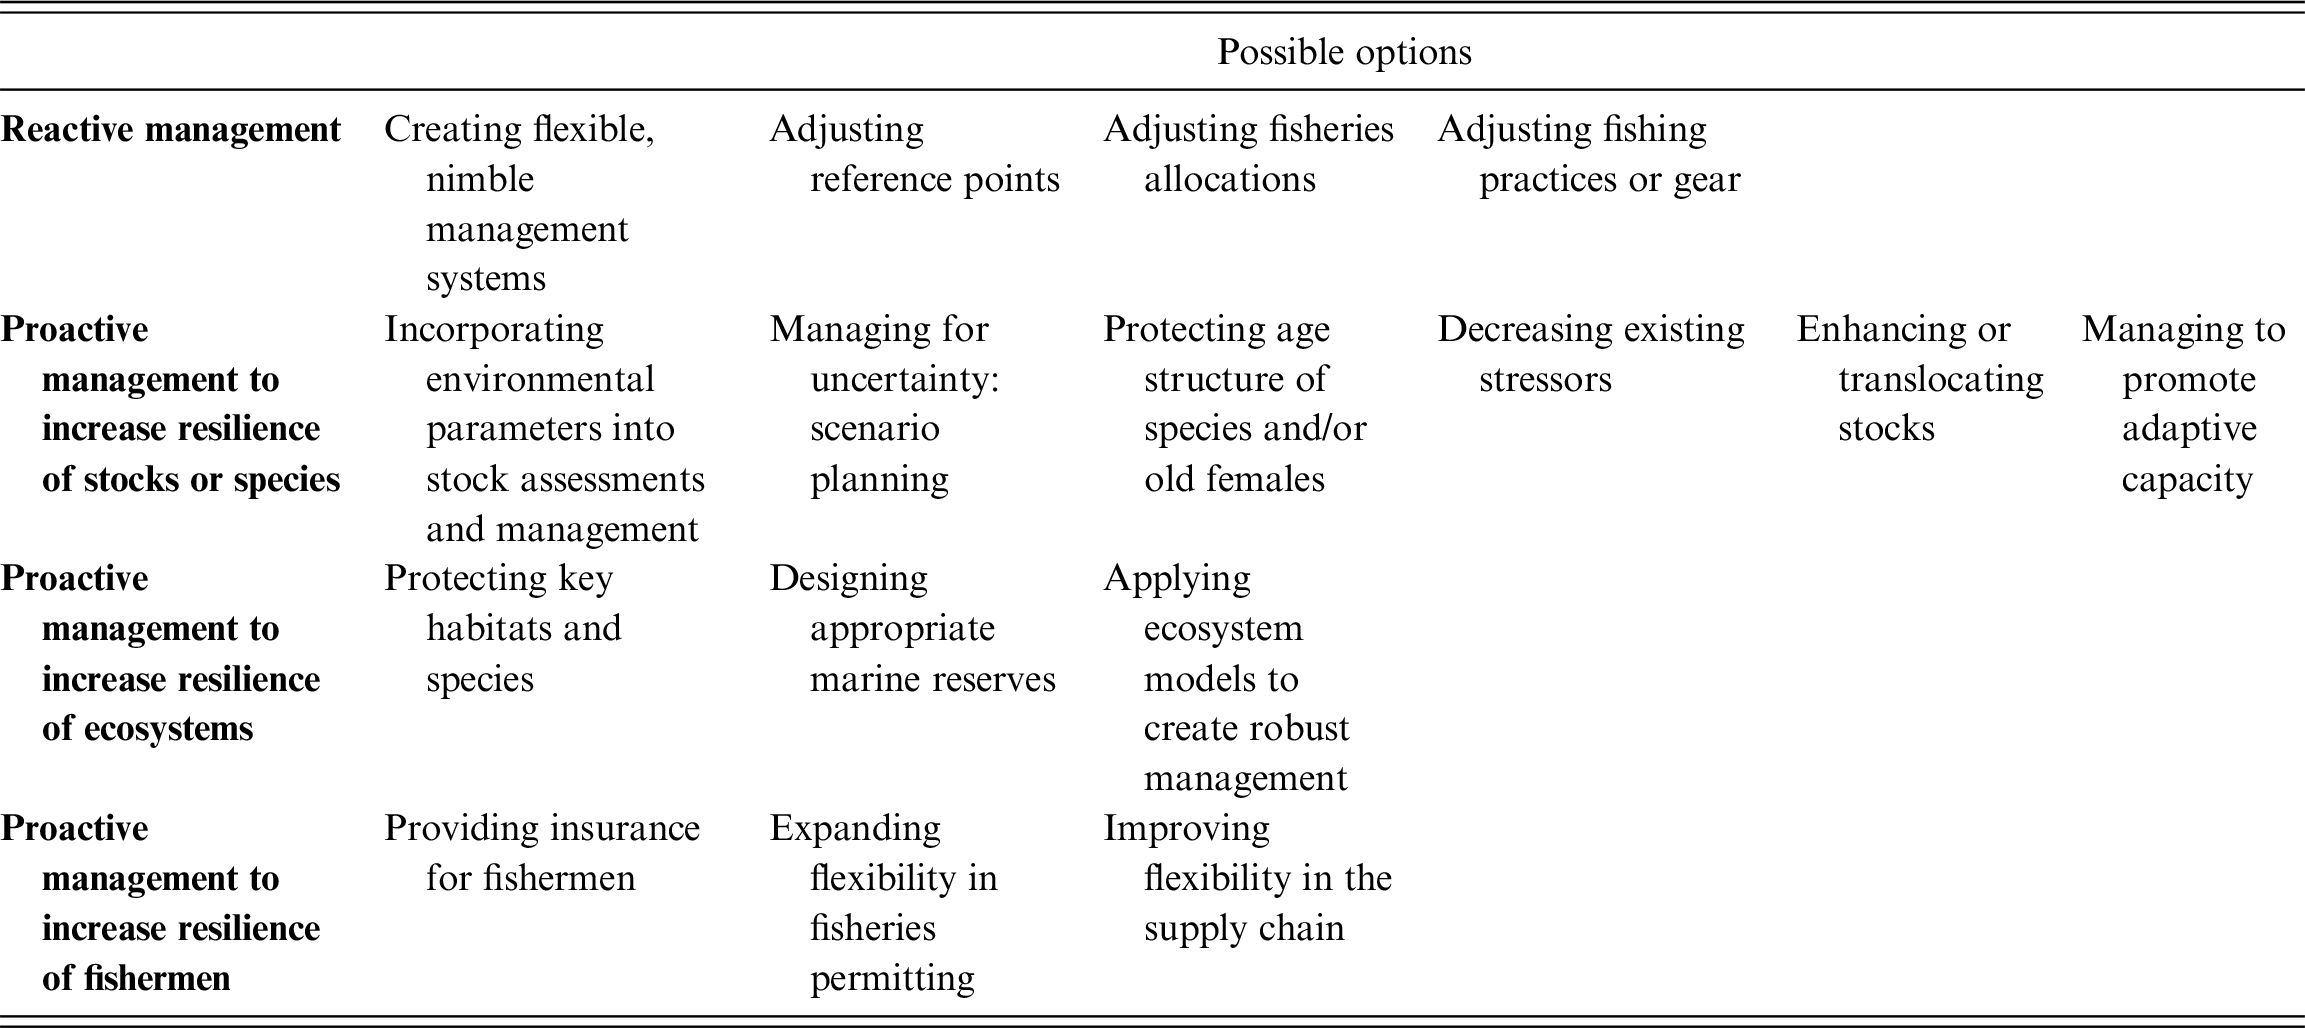 Marine Fisheries and Pelagic Seas (Part III) - Climate